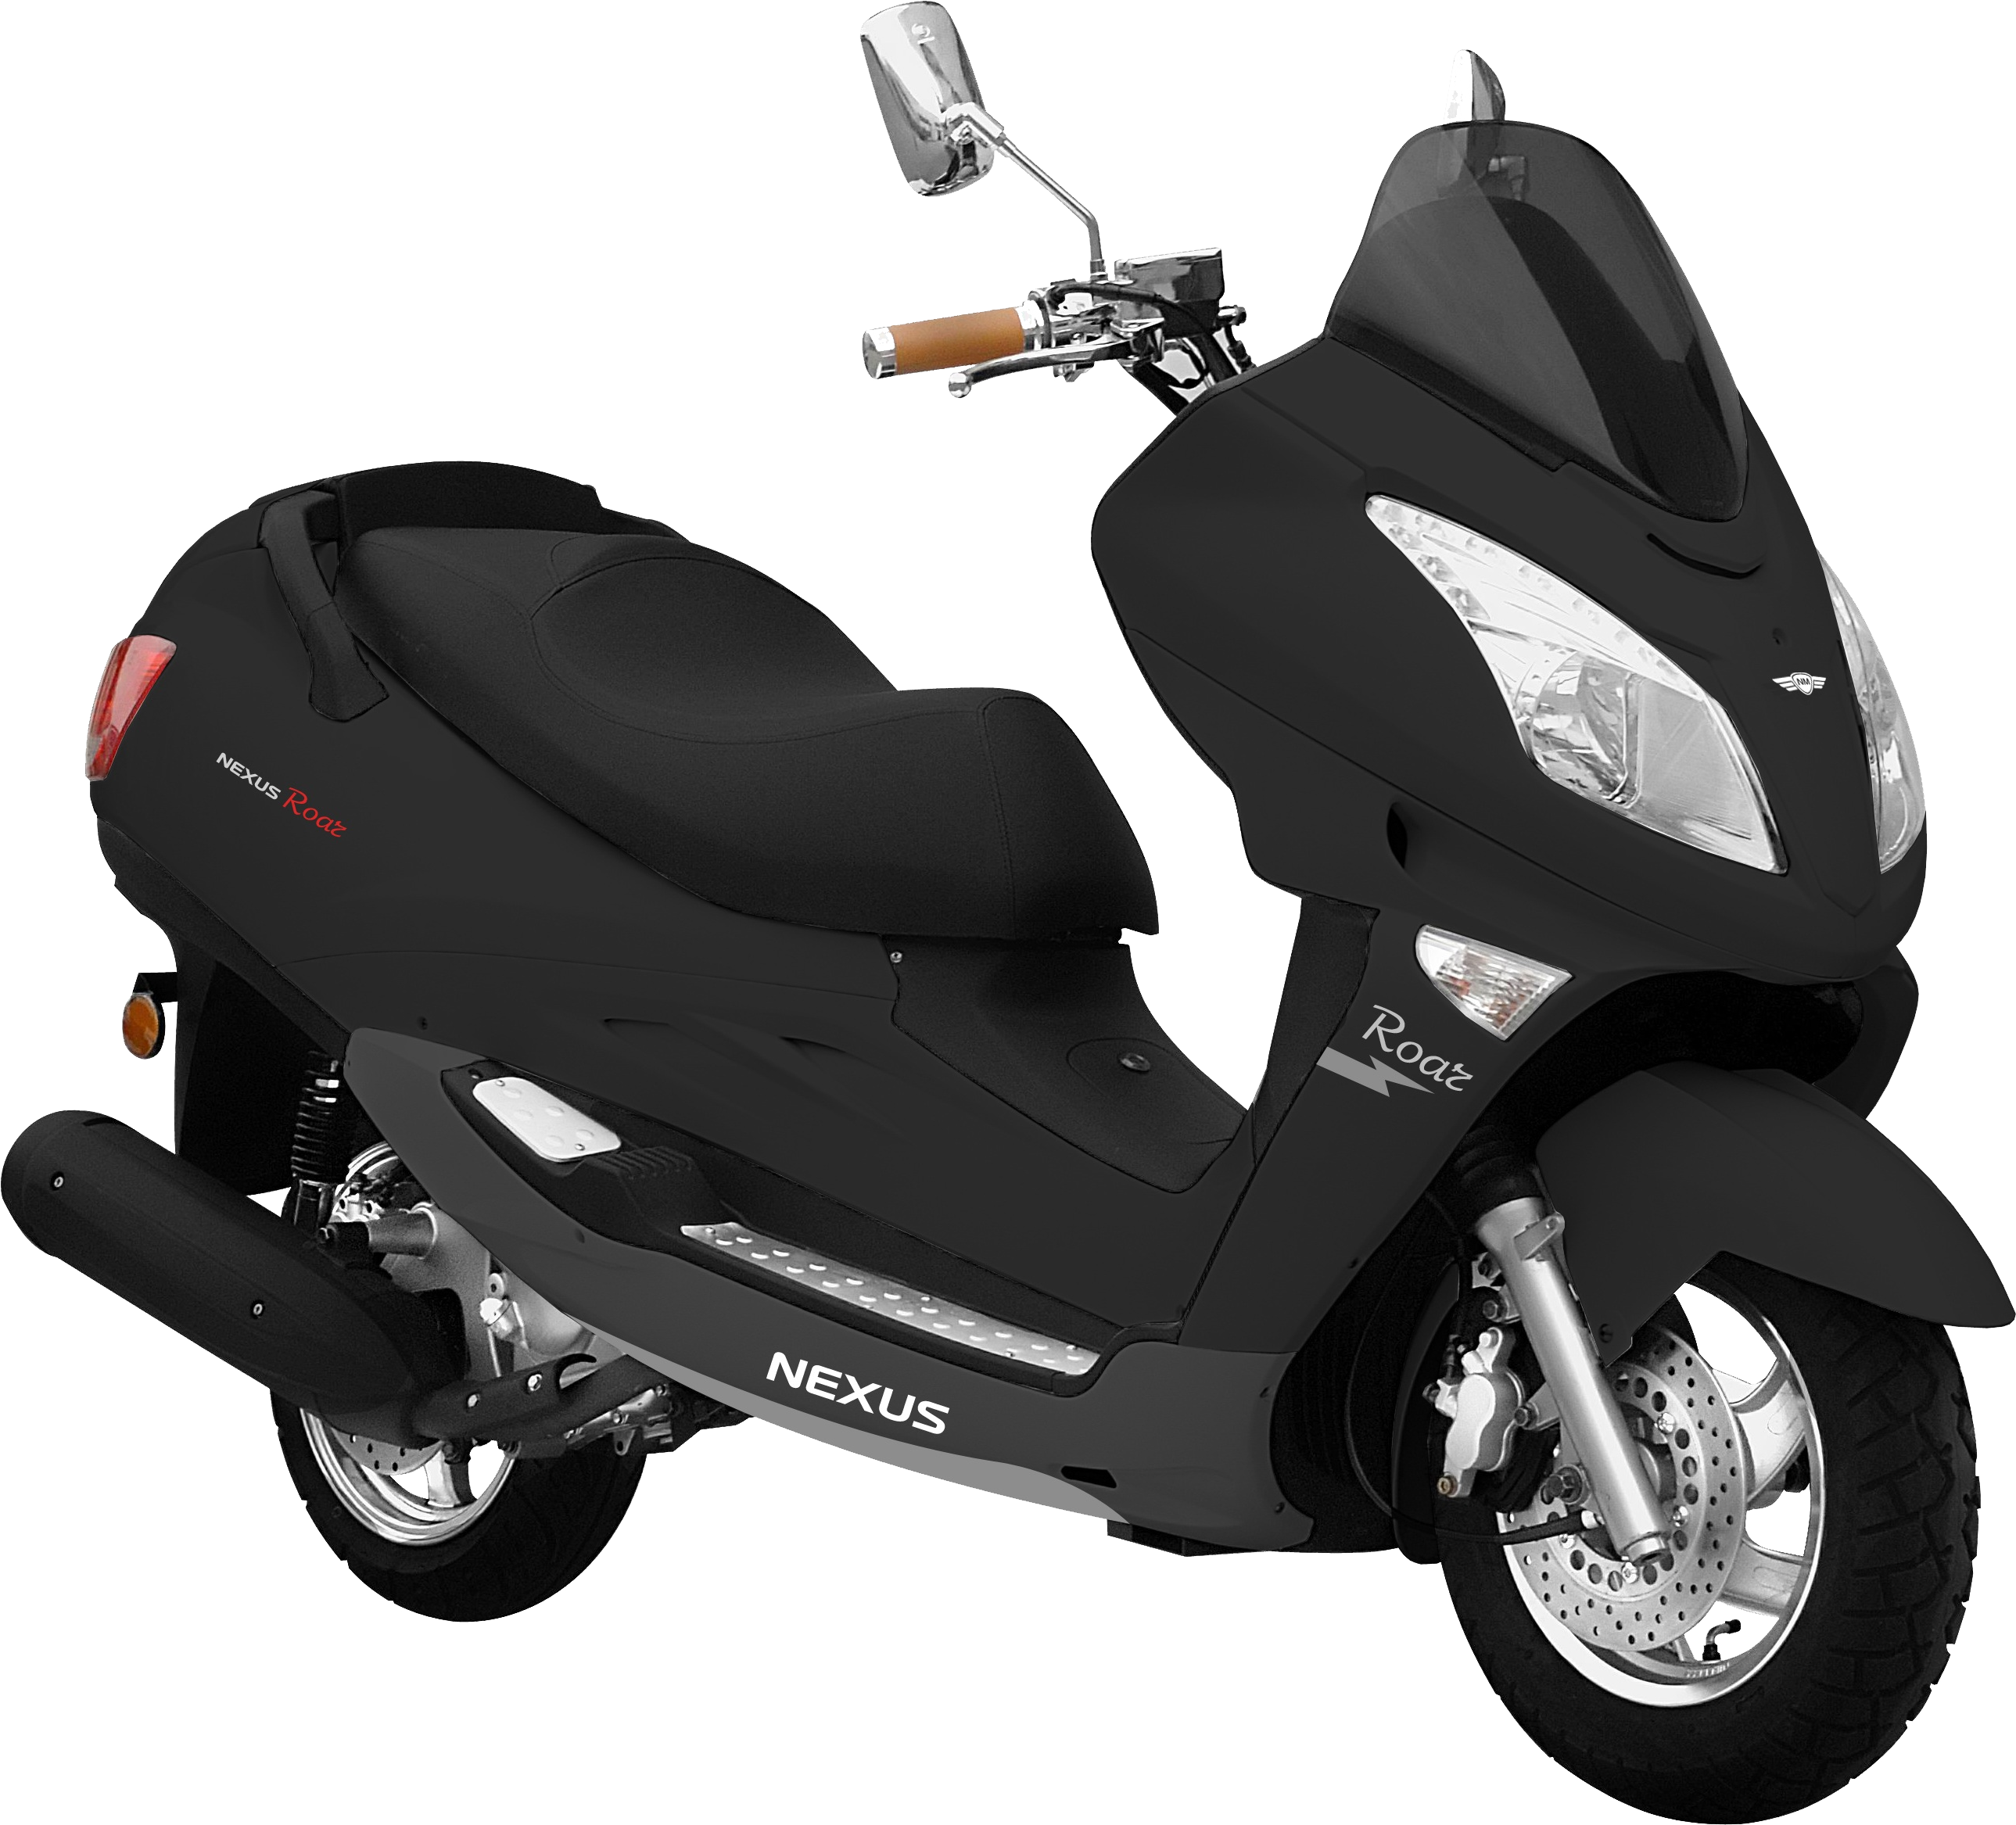 Cycle clipart bike scooter. Png image purepng free